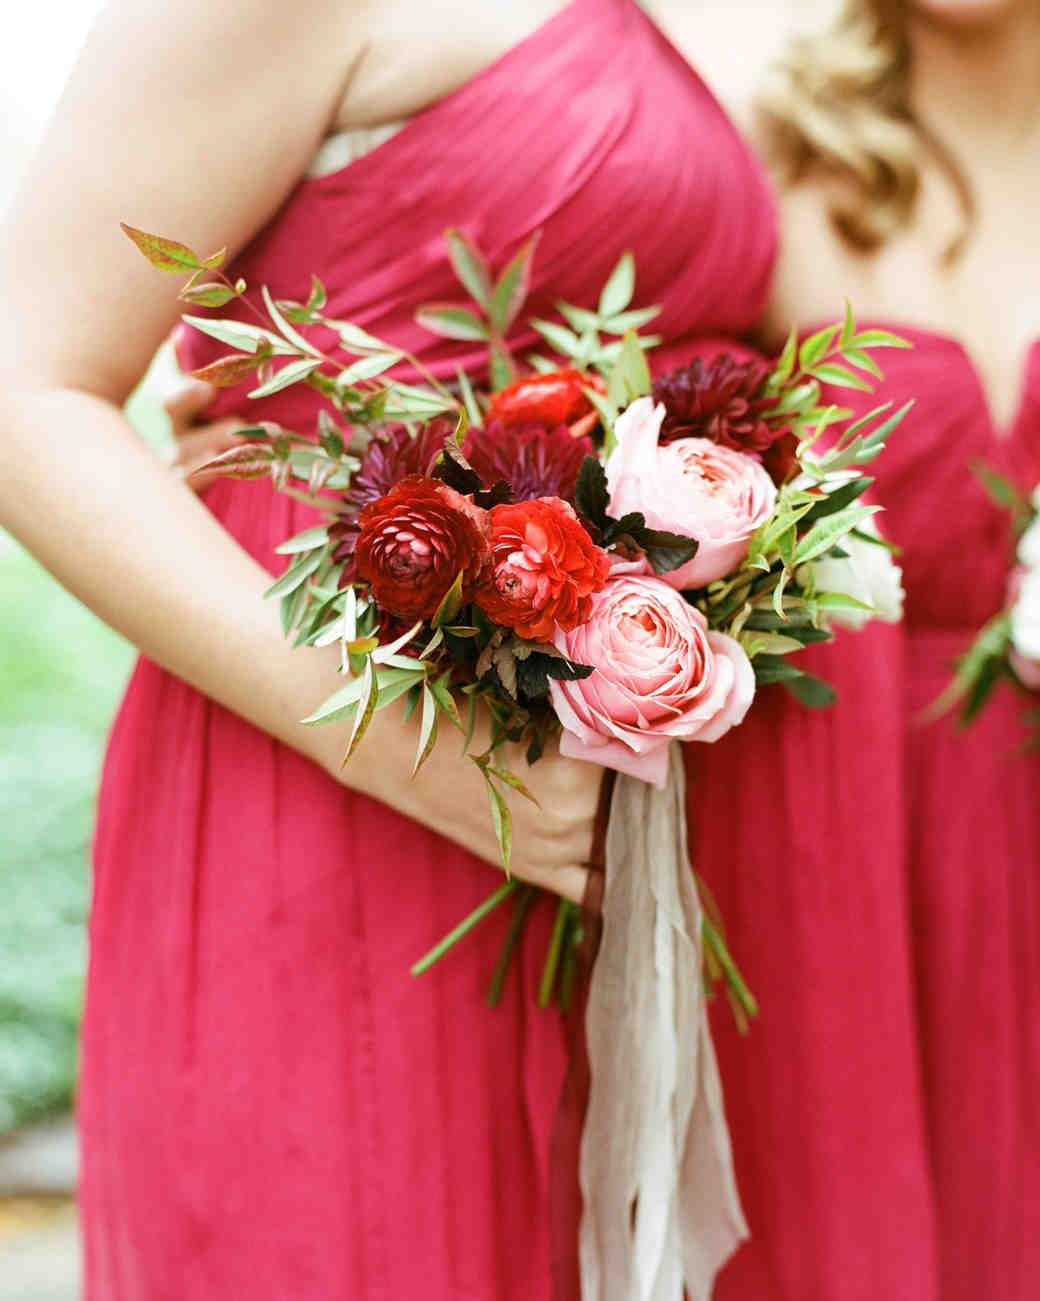 38 Ideas for Your Bridesmaids Bouquets Martha Stewart Weddings